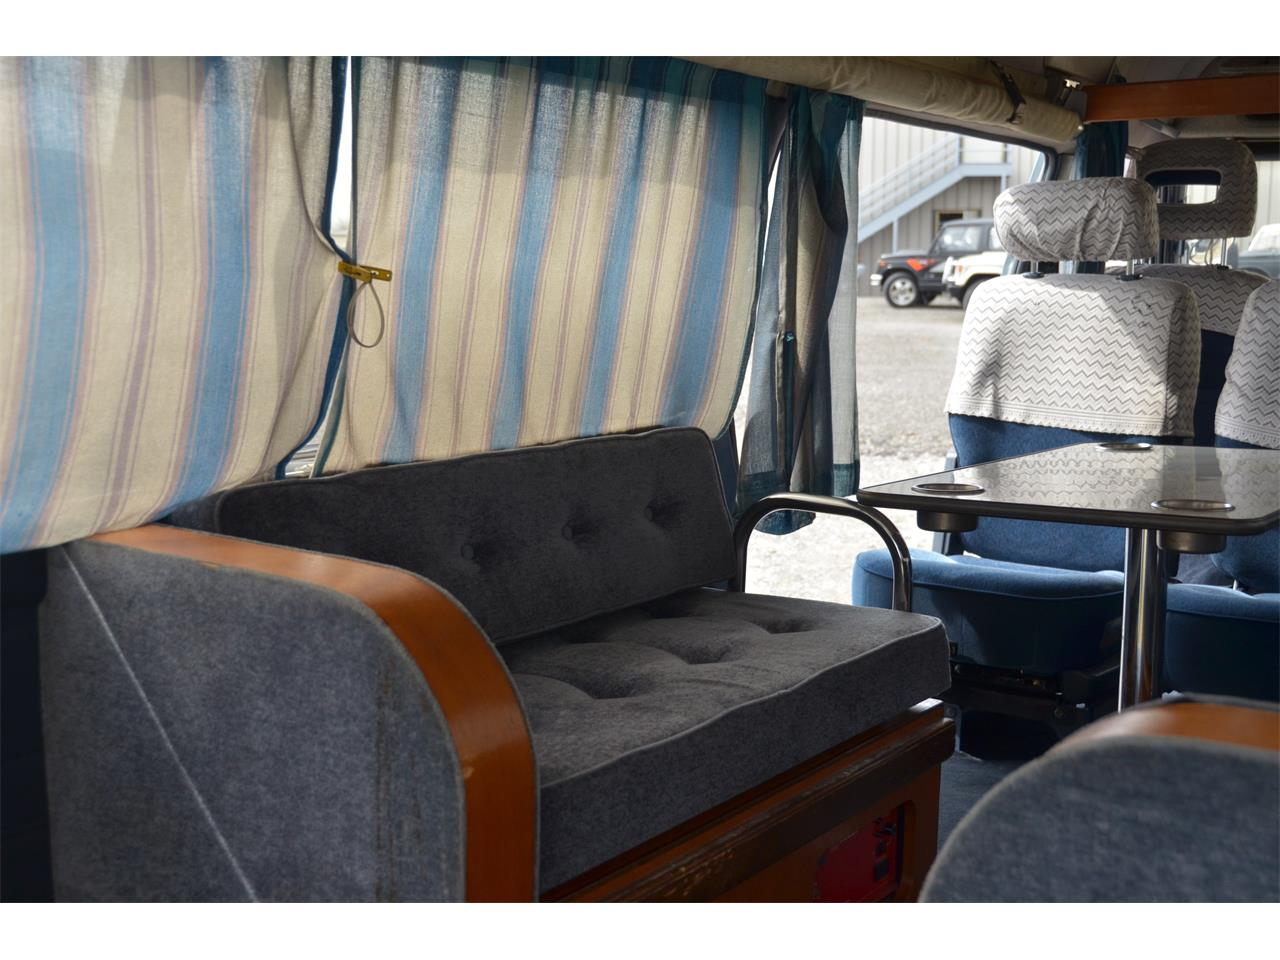 Large Picture of '90 Nissan Caravan located in Christiansburg Virginia Offered by Duncan Imports & Classic Cars - LN58